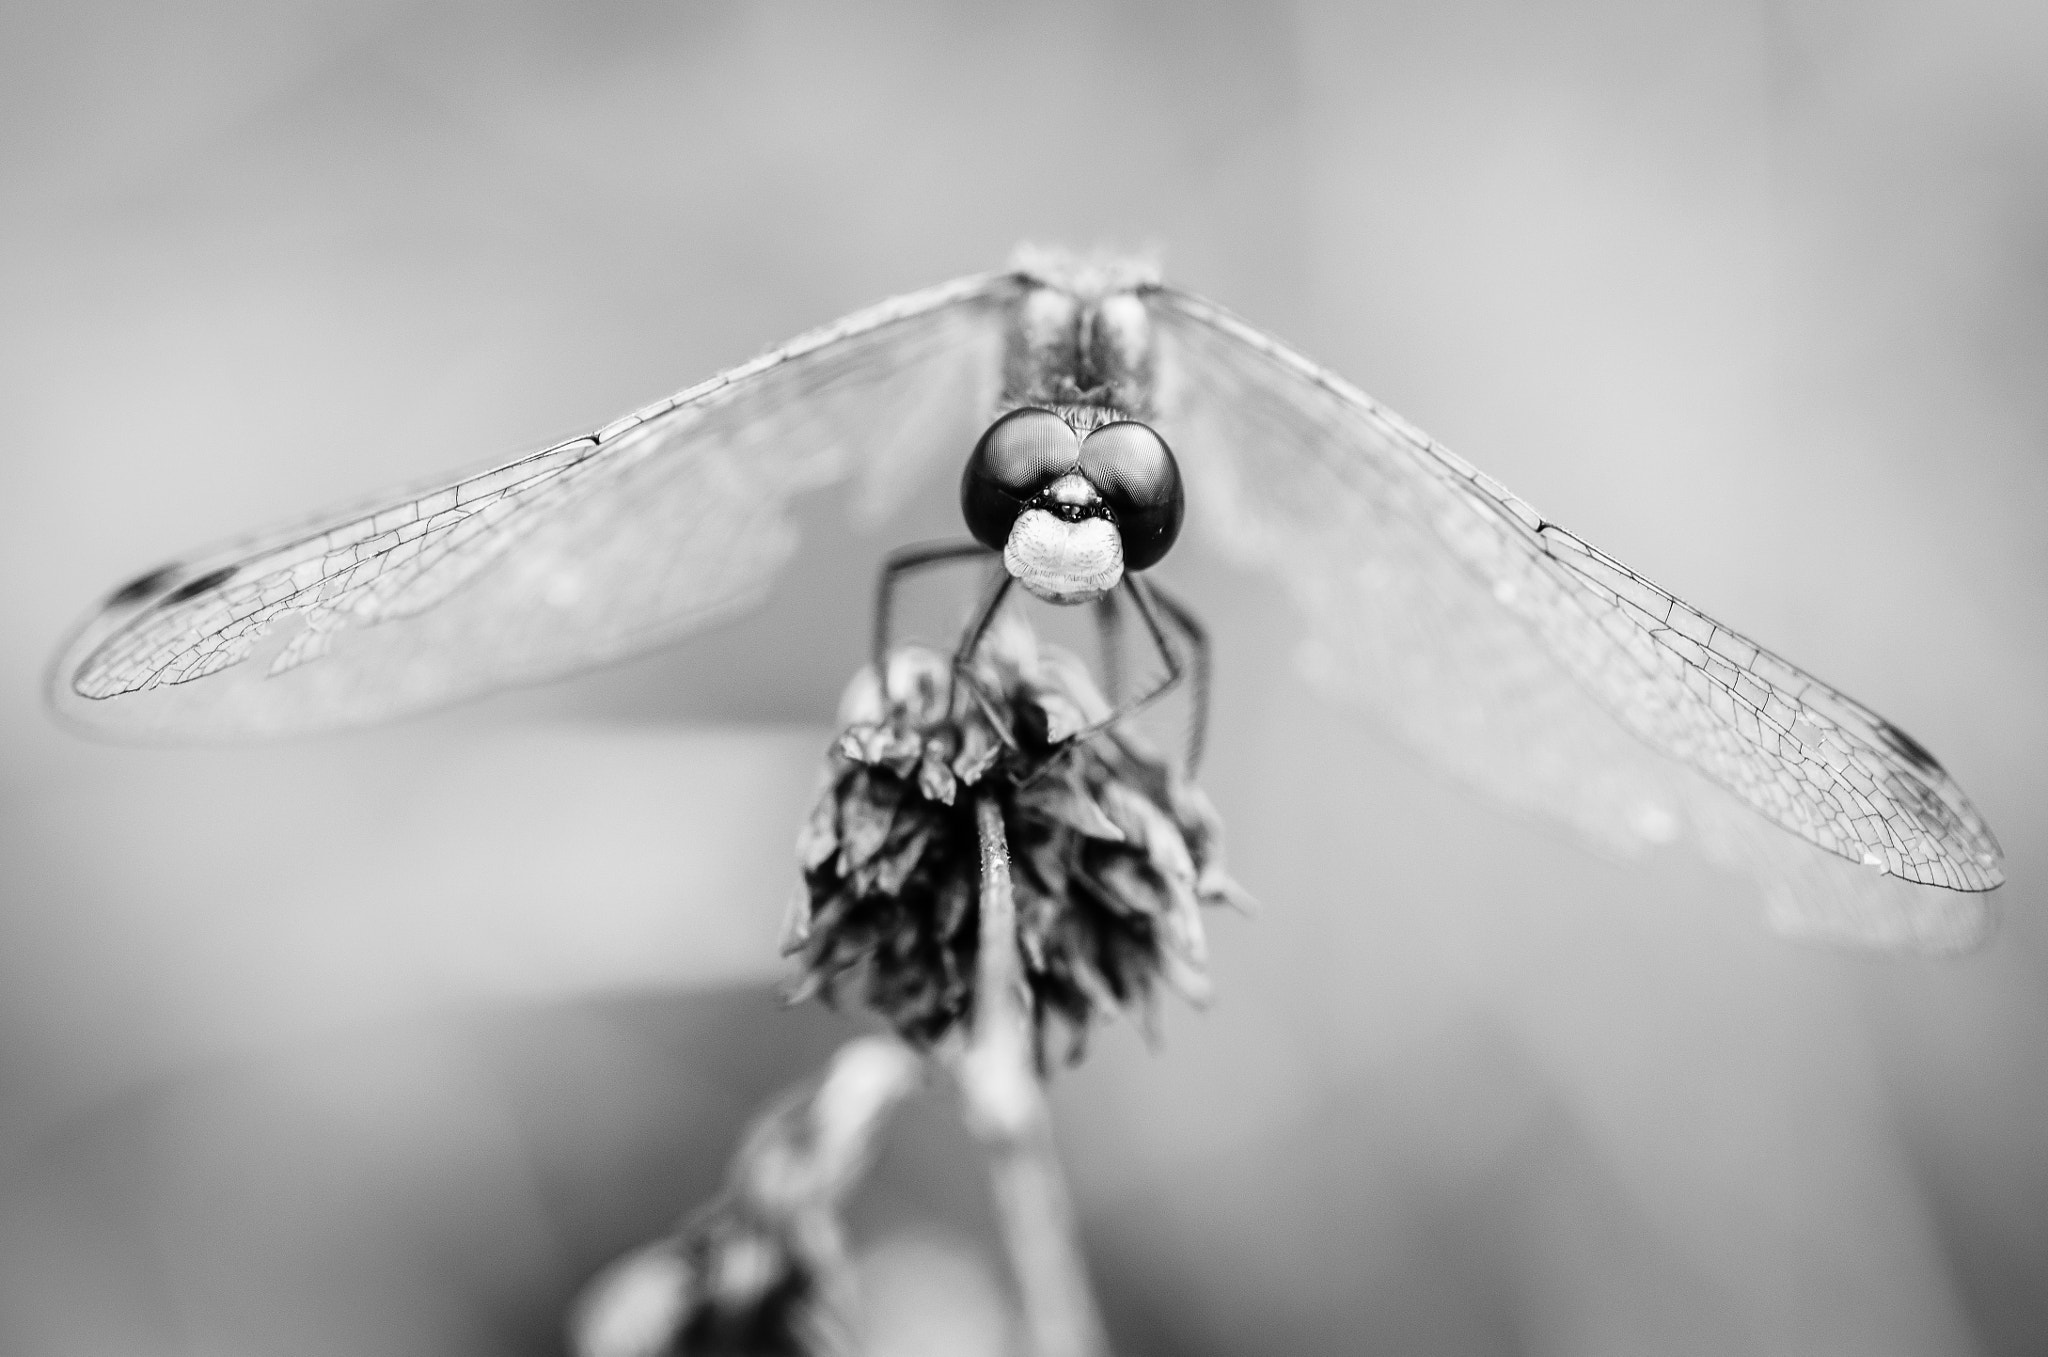 Photograph Dragonfly by Laurens Kaldeway on 500px